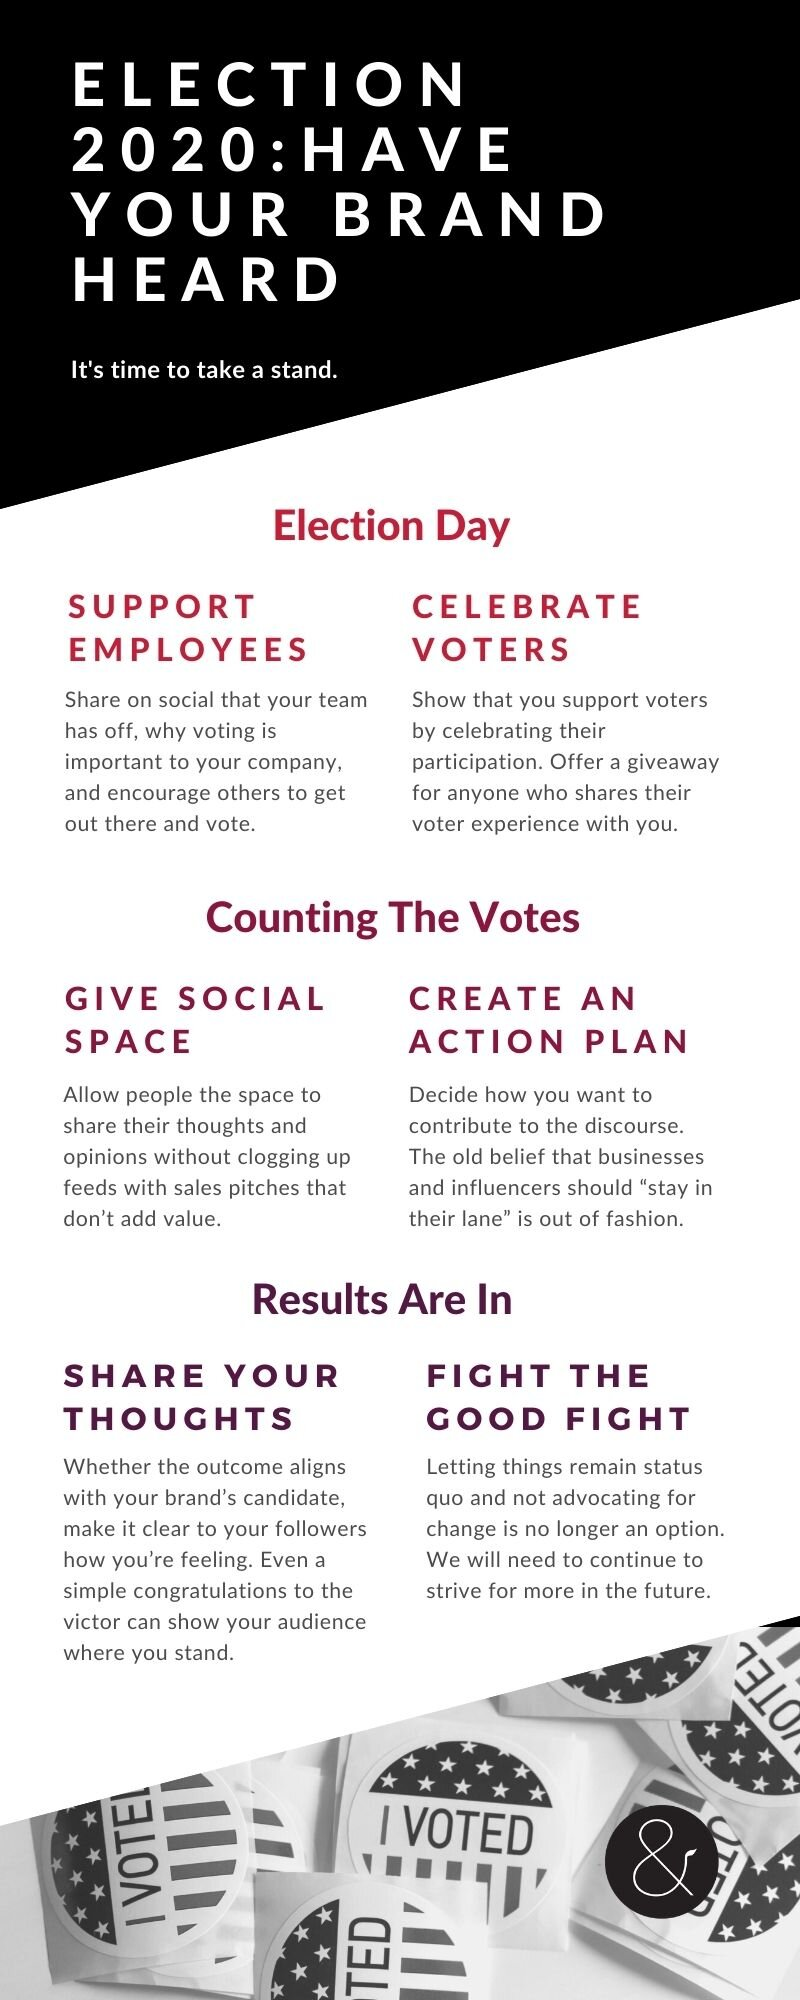 Election 2020 Brand Voice Infographic.jpg